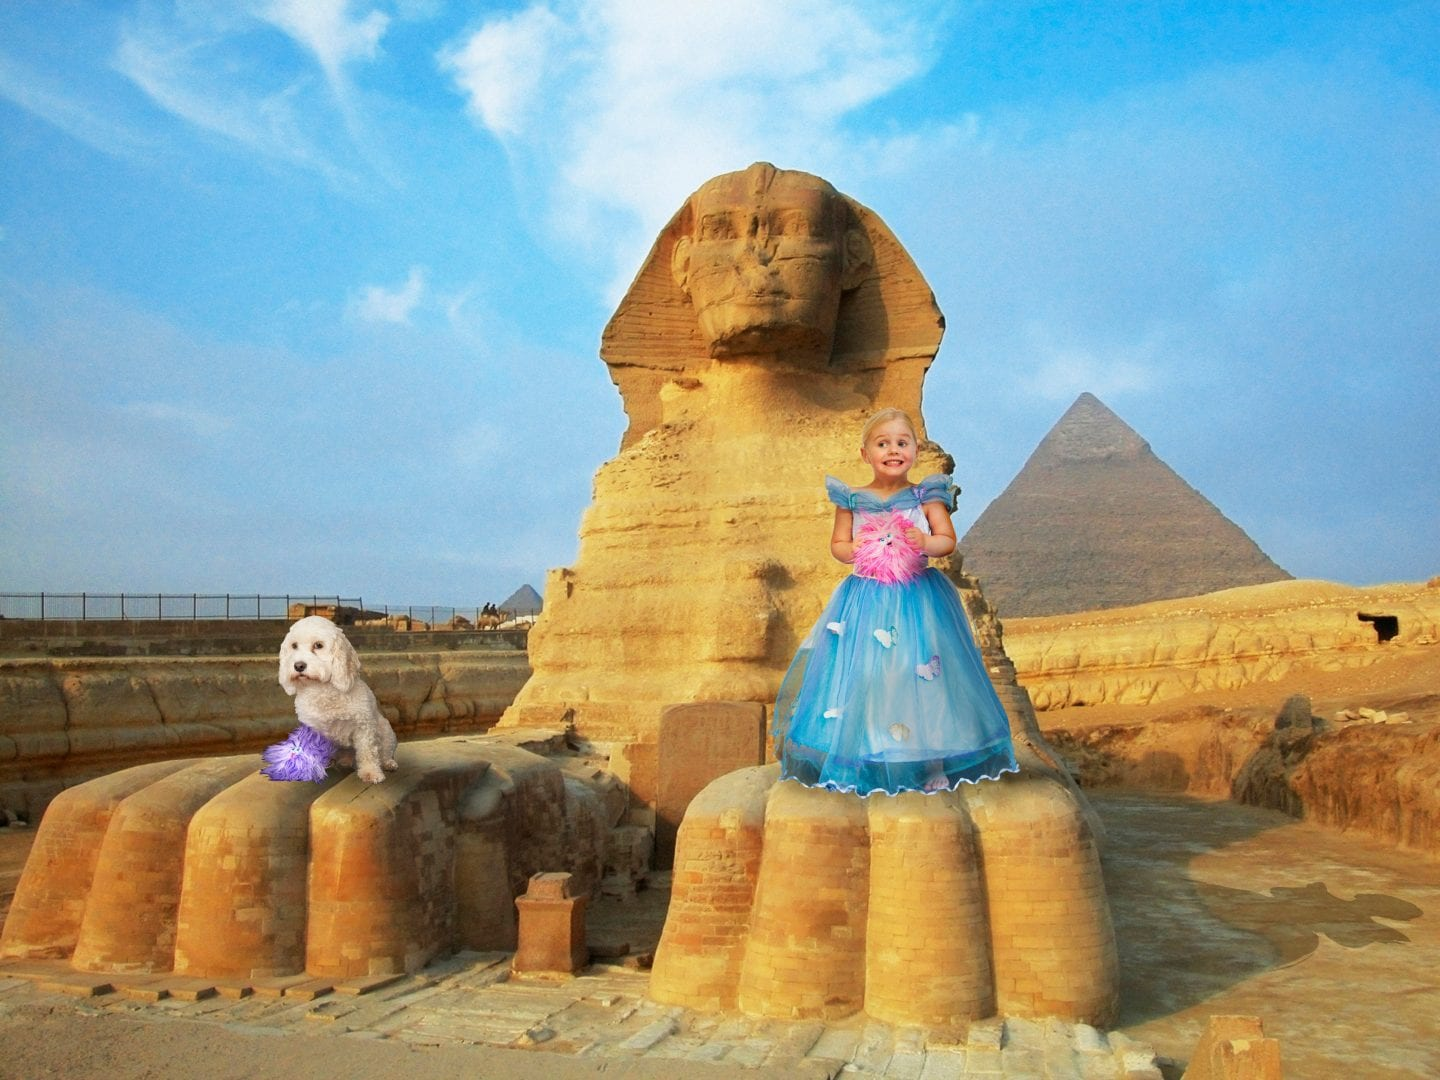 meggy-and-oscar-at-pyramids